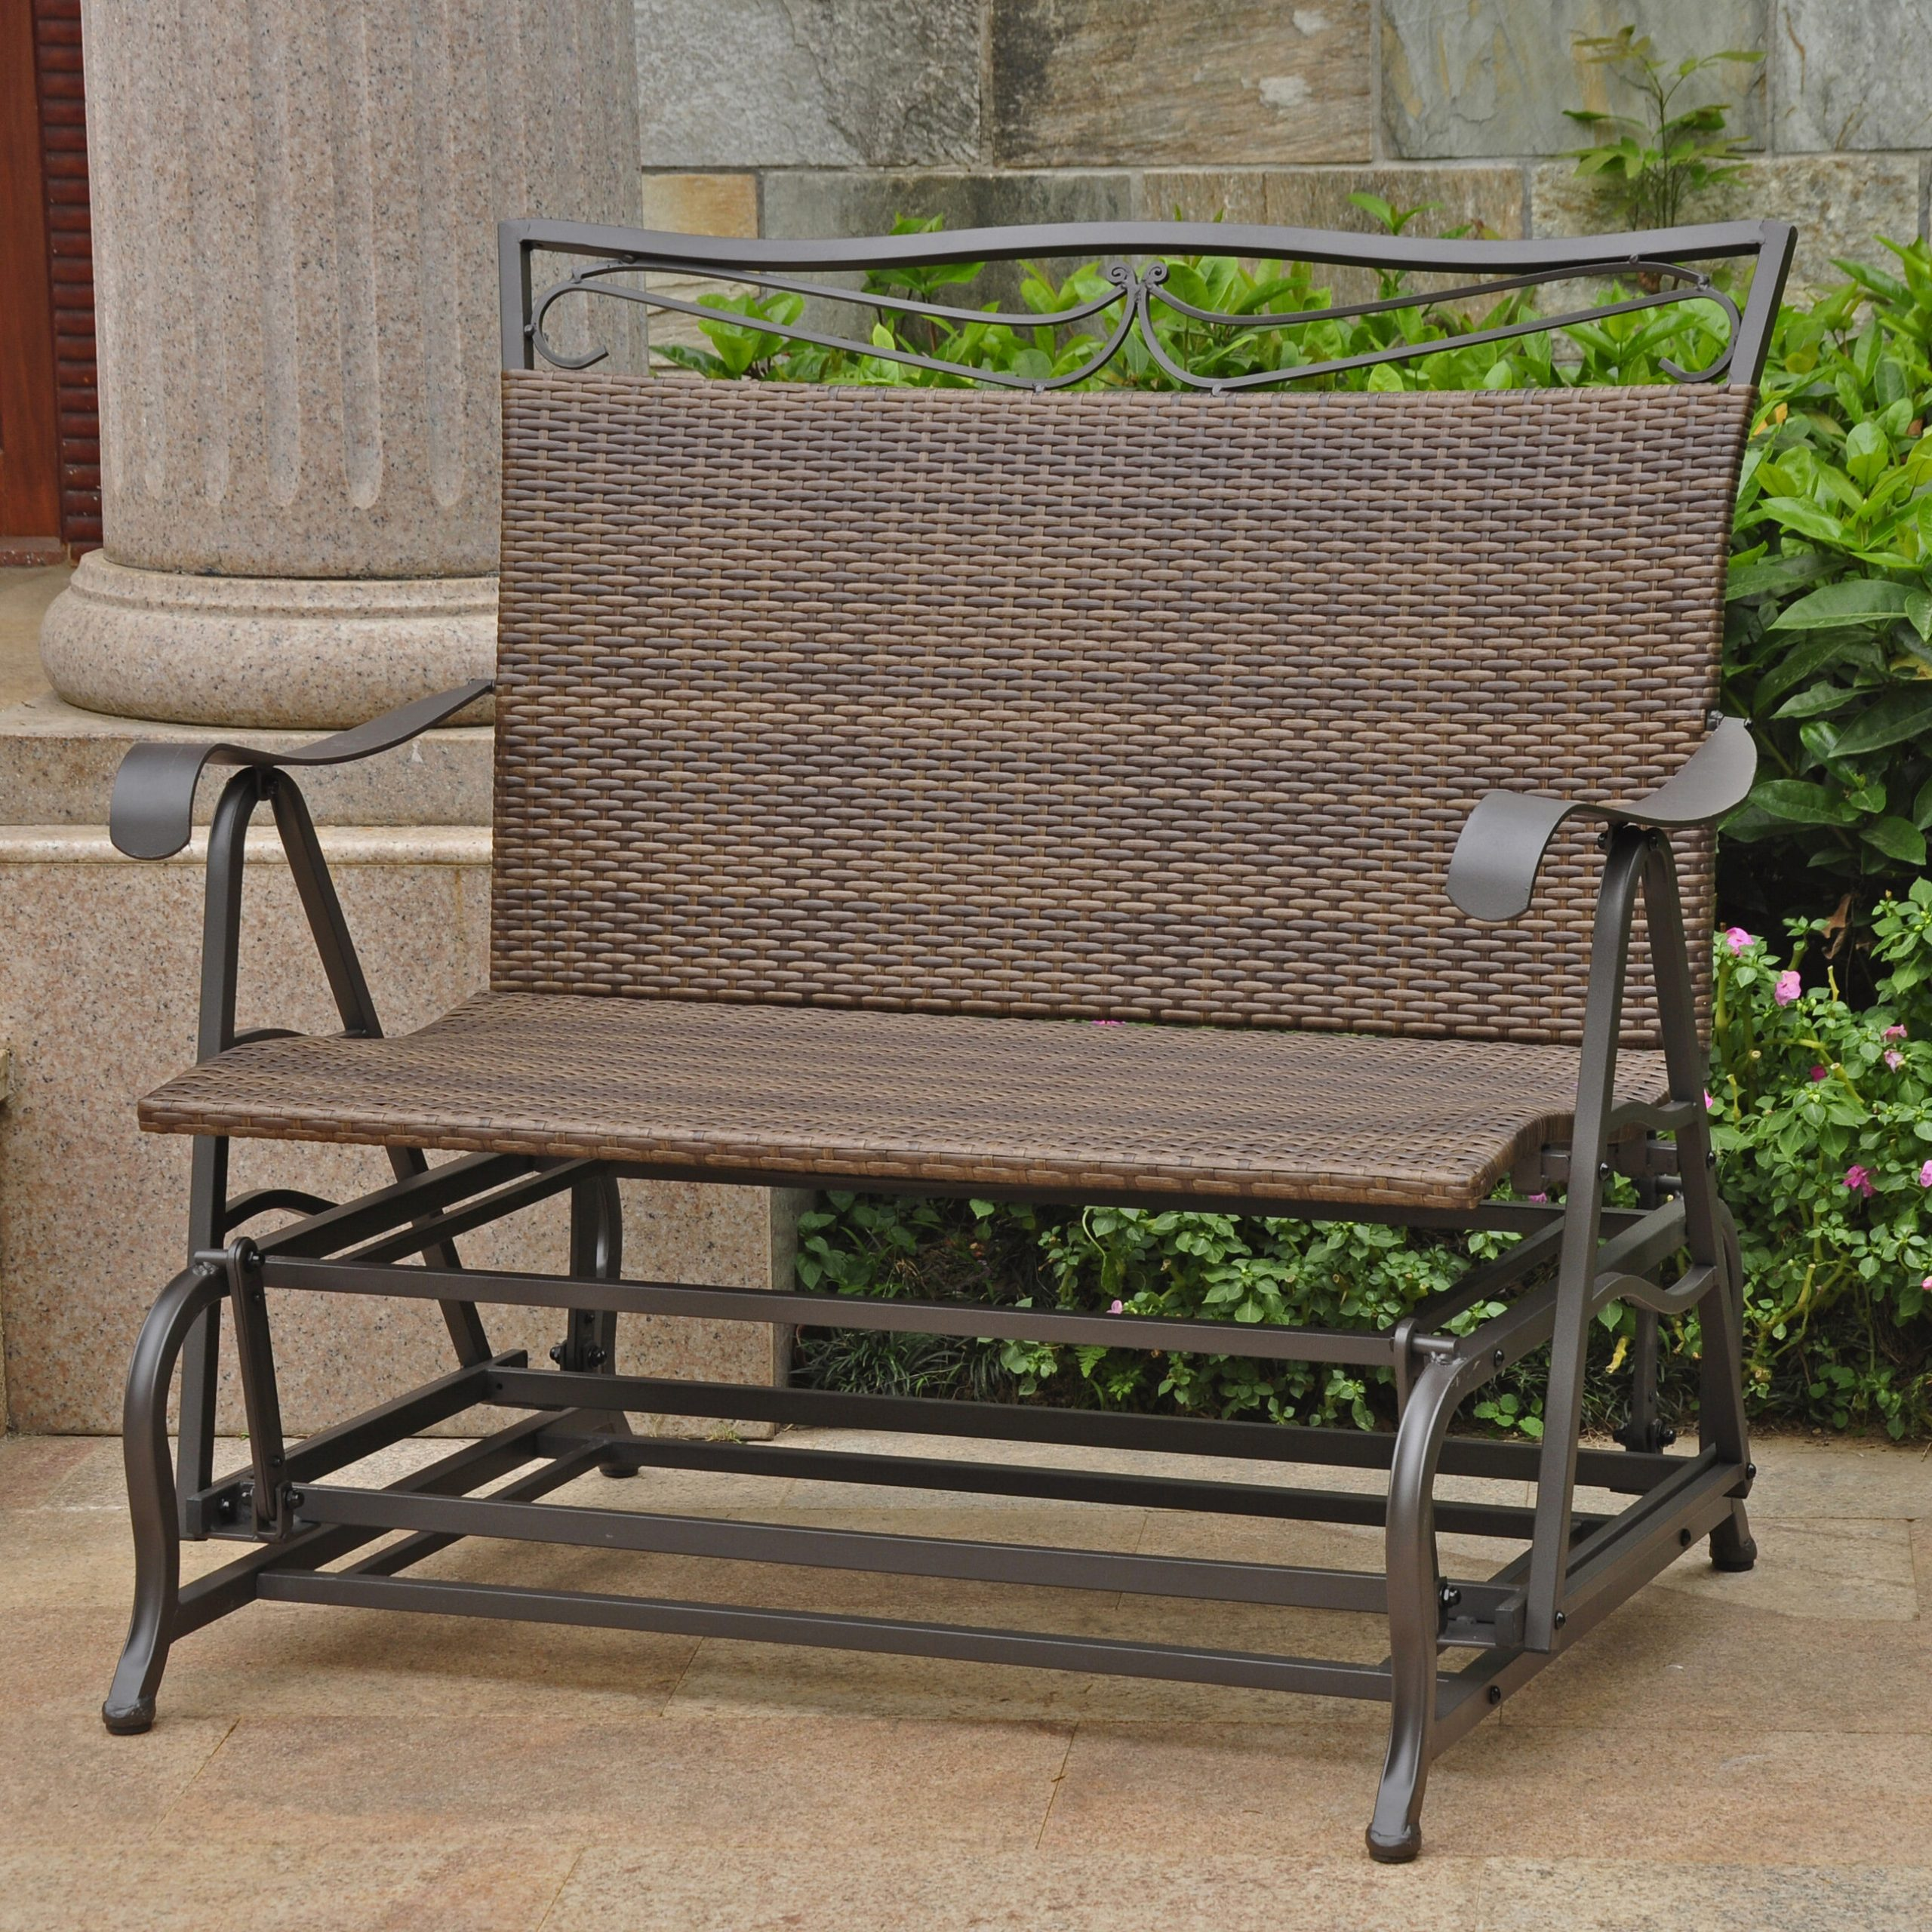 Stapleton Indoor/outdoor Double Glider Bench Regarding Padded Sling Double Glider Benches (View 7 of 25)